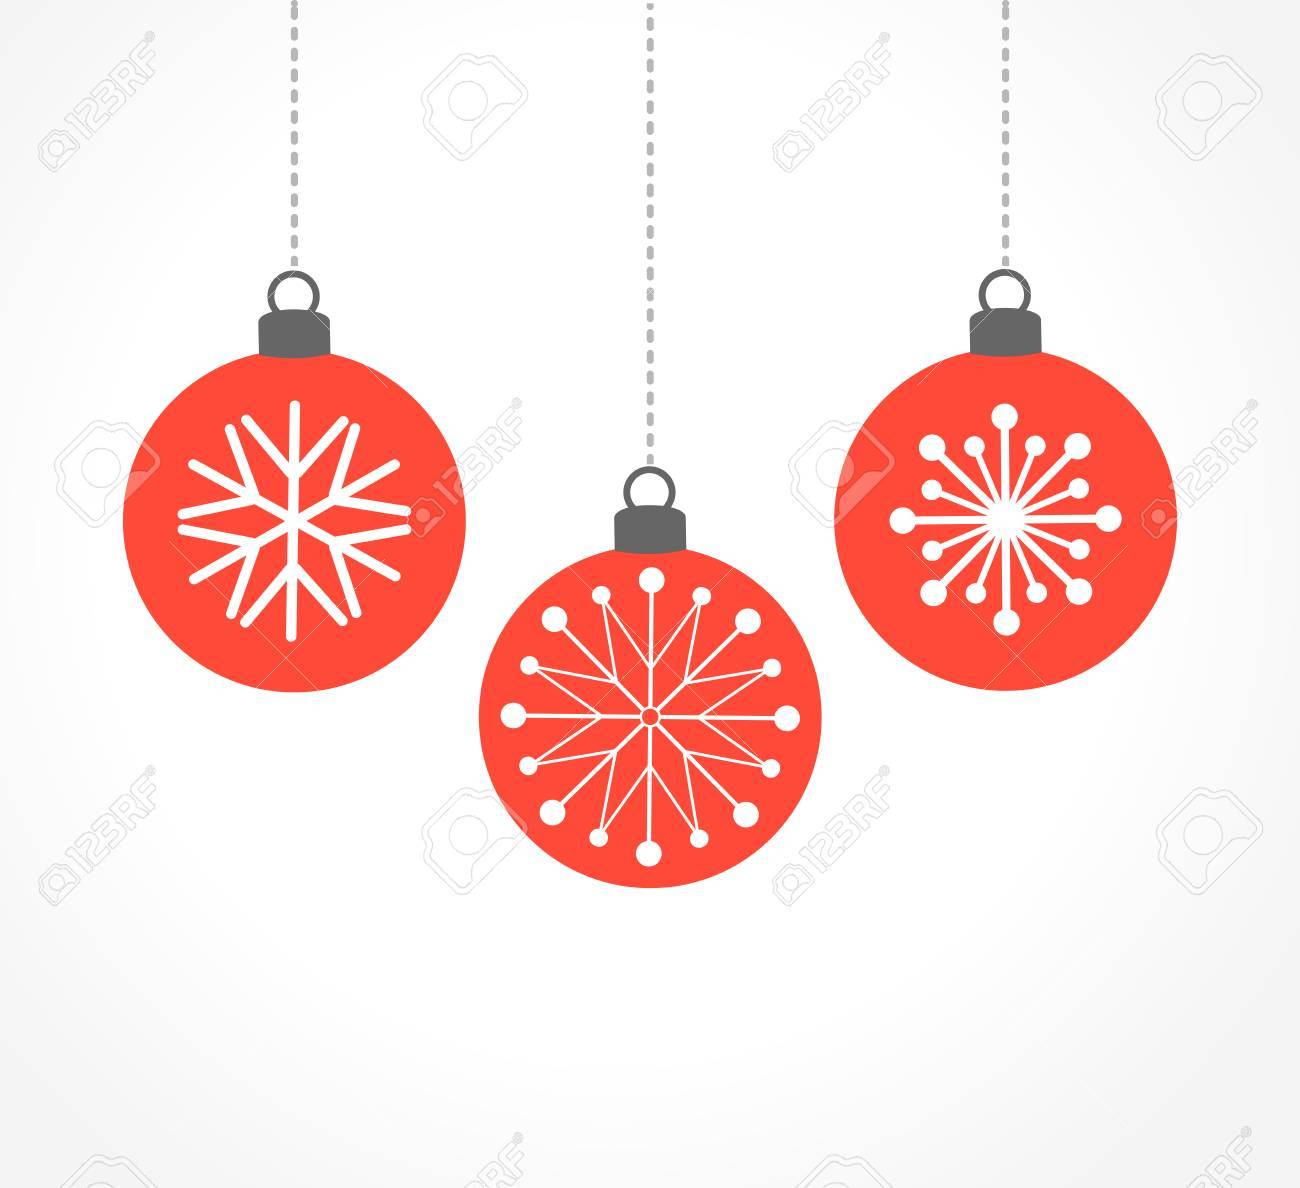 Christmas Ornament Vector Png